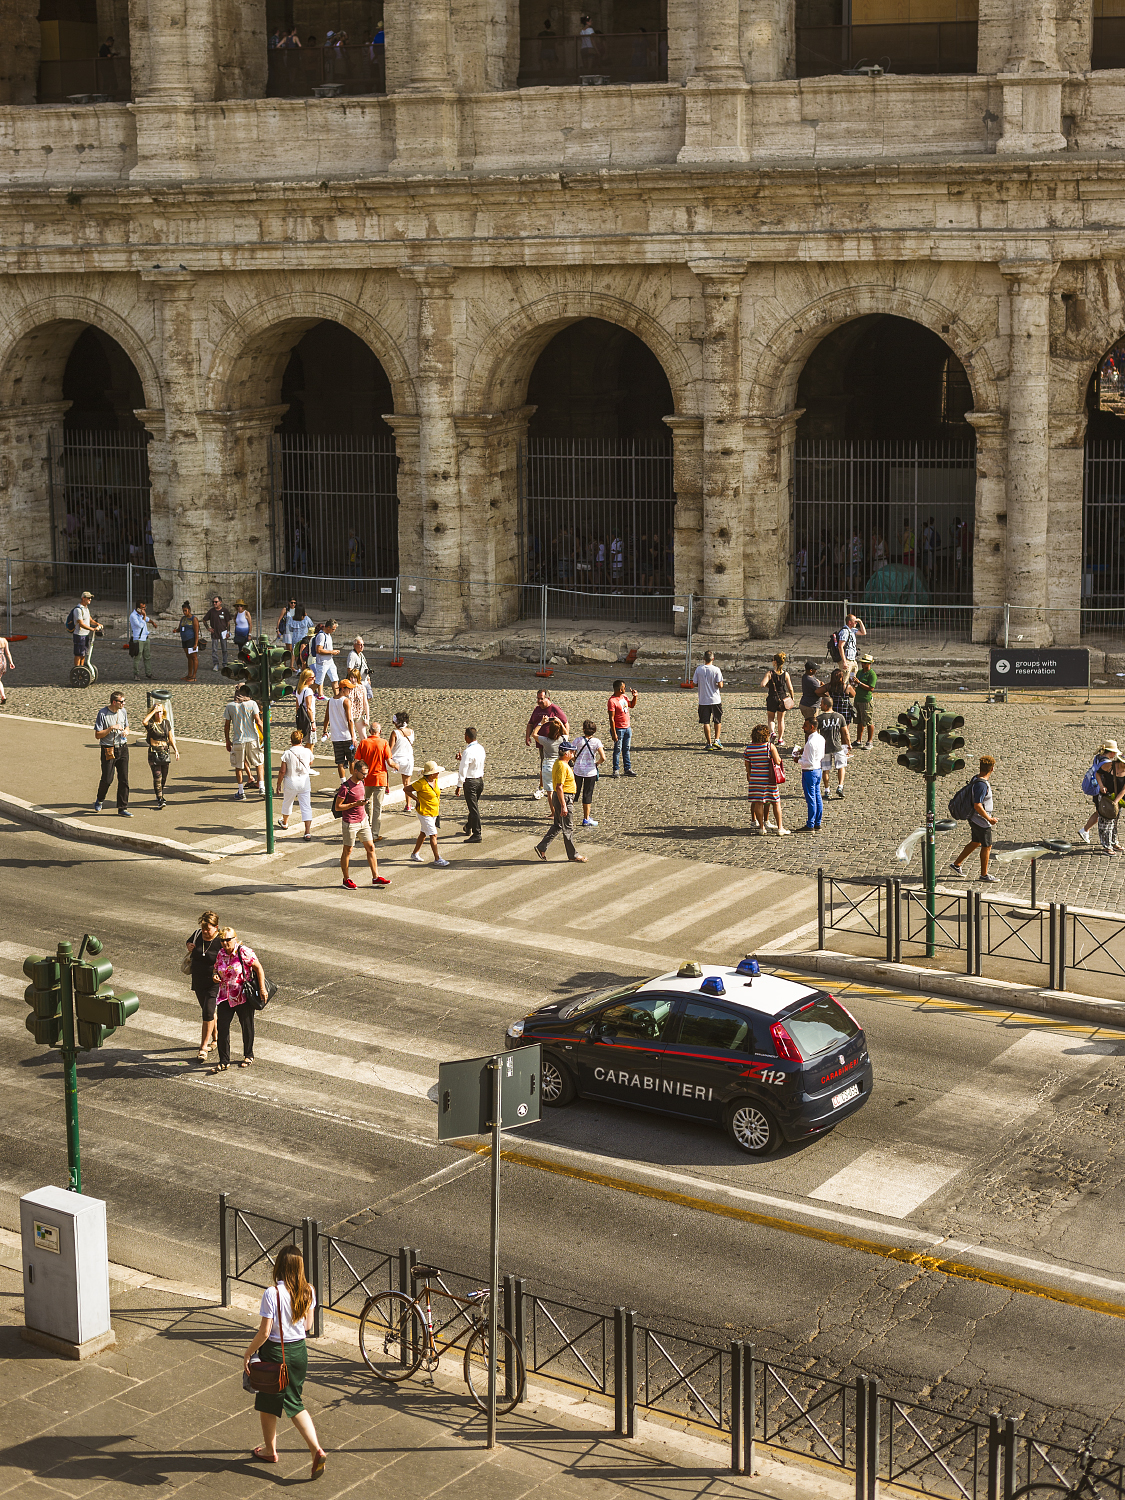 Busy crosswalk at the Colosseum.